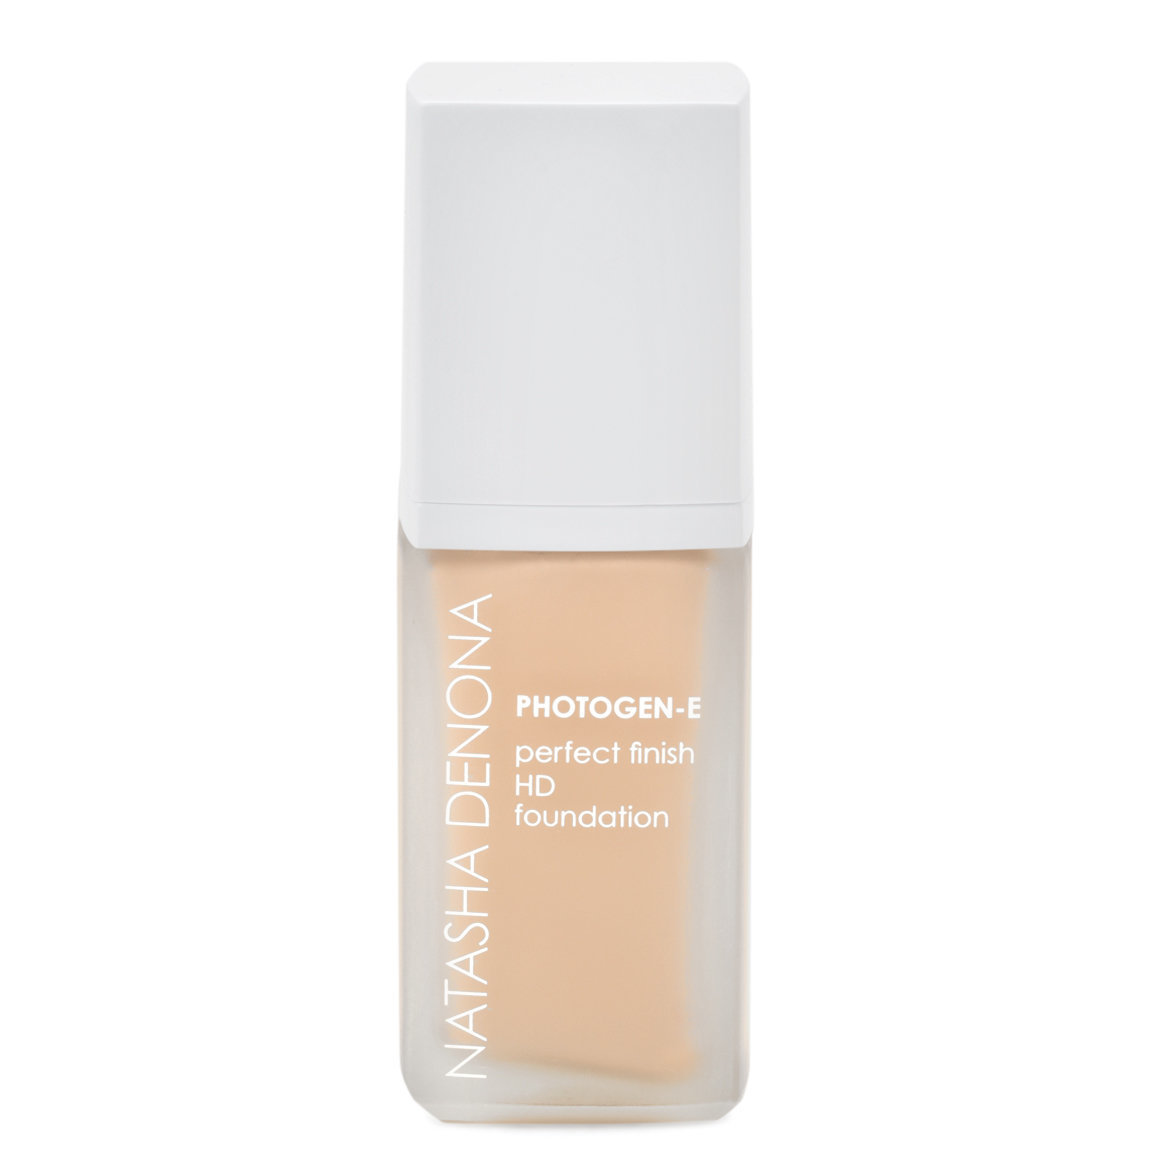 Natasha Denona Photogen-e Perfect Finish HD Foundation 2 - Nude